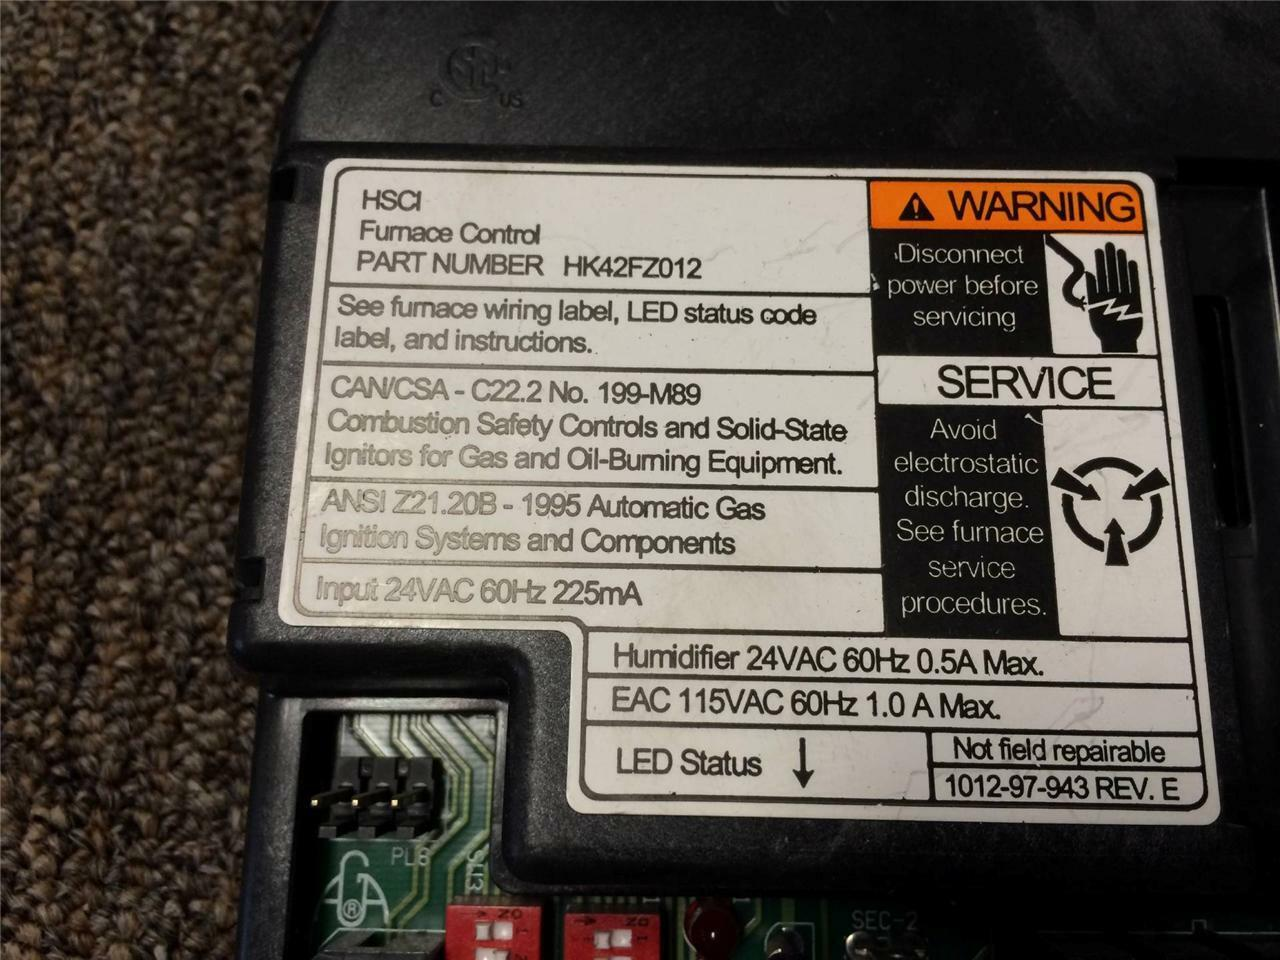 Carrier Bryant Hk42fz012 Furnace Control Circuit Board Hk42fz003 Ebay Hk42fz009 1012940l Norton Secured Powered By Verisign